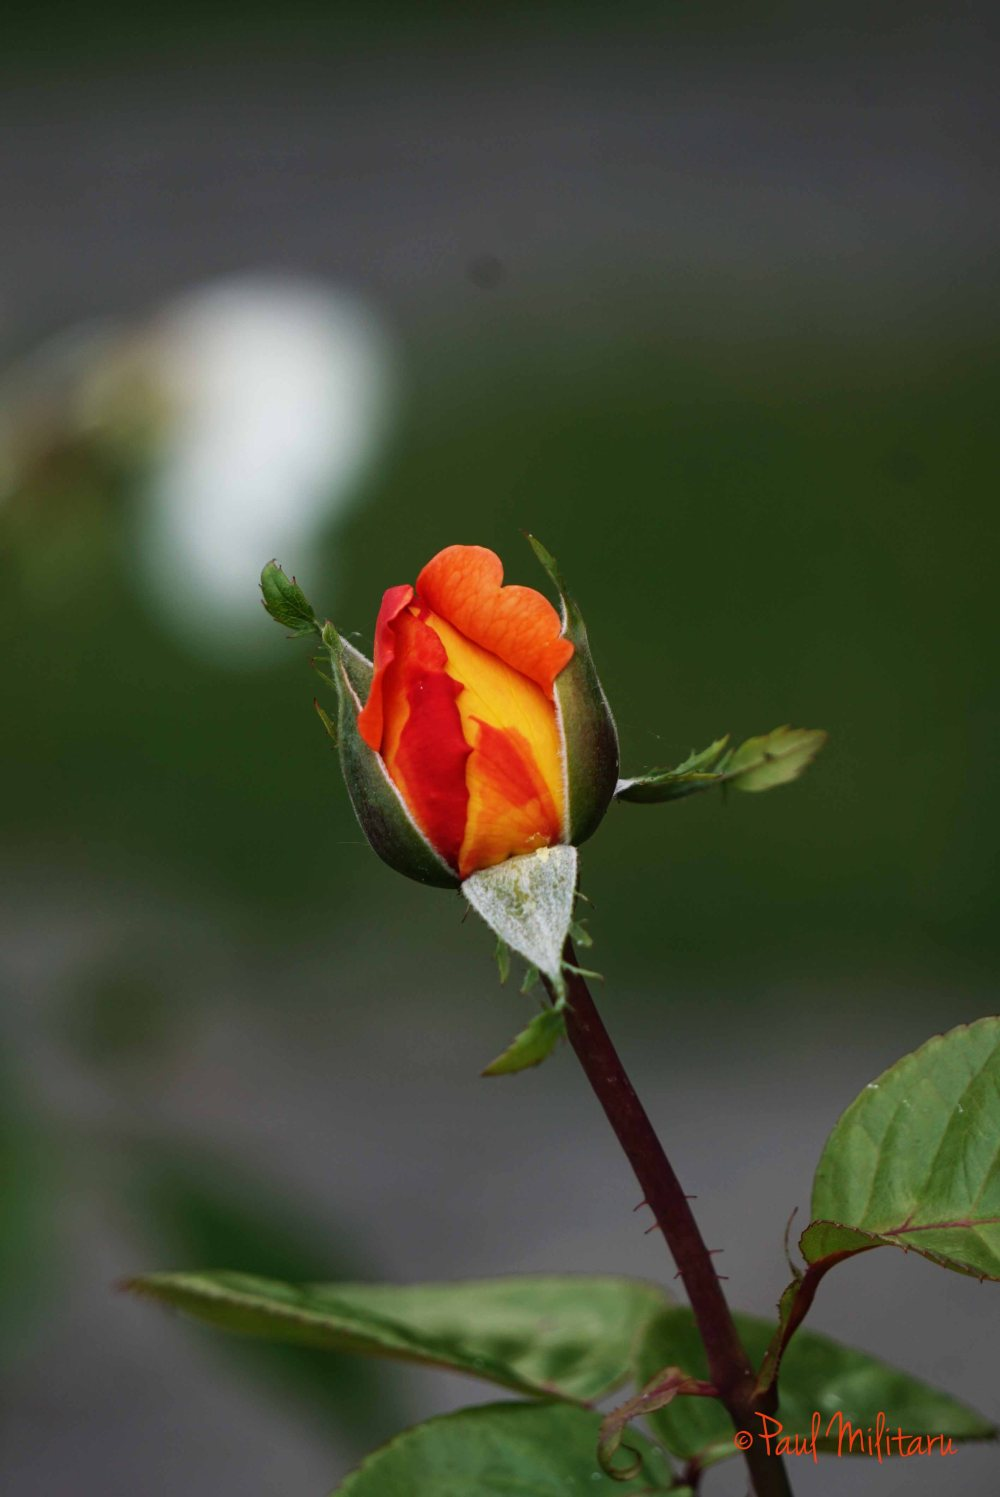 the beauty of a rose bud